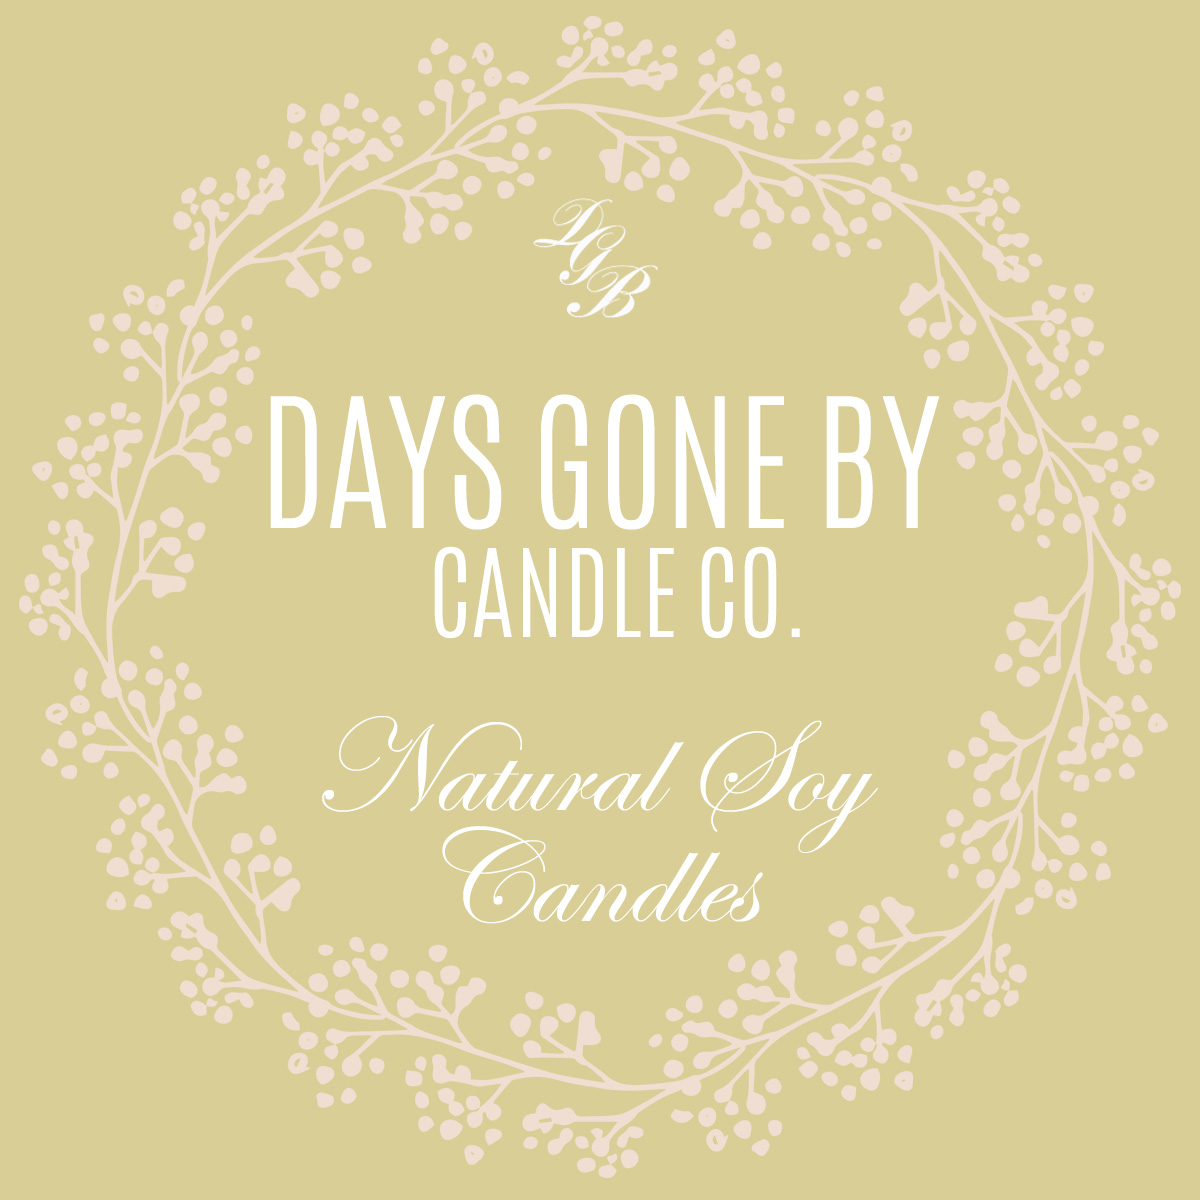 DAYS GONE BY CANDLE CO